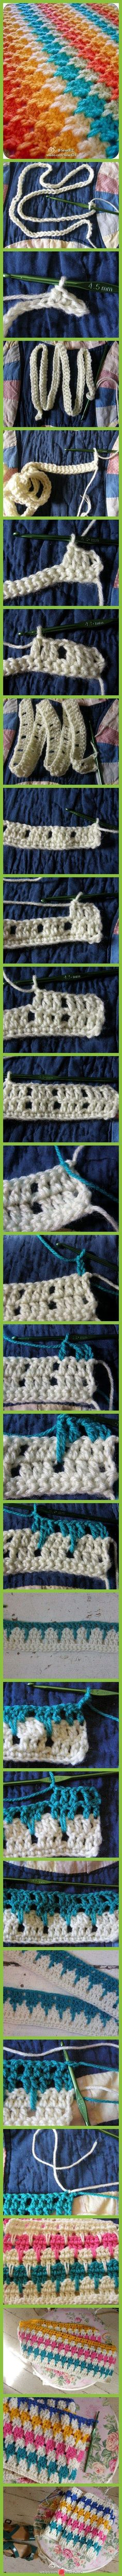 I am learning to crochet, and this is a beautiful afghan. would like someday to make this.